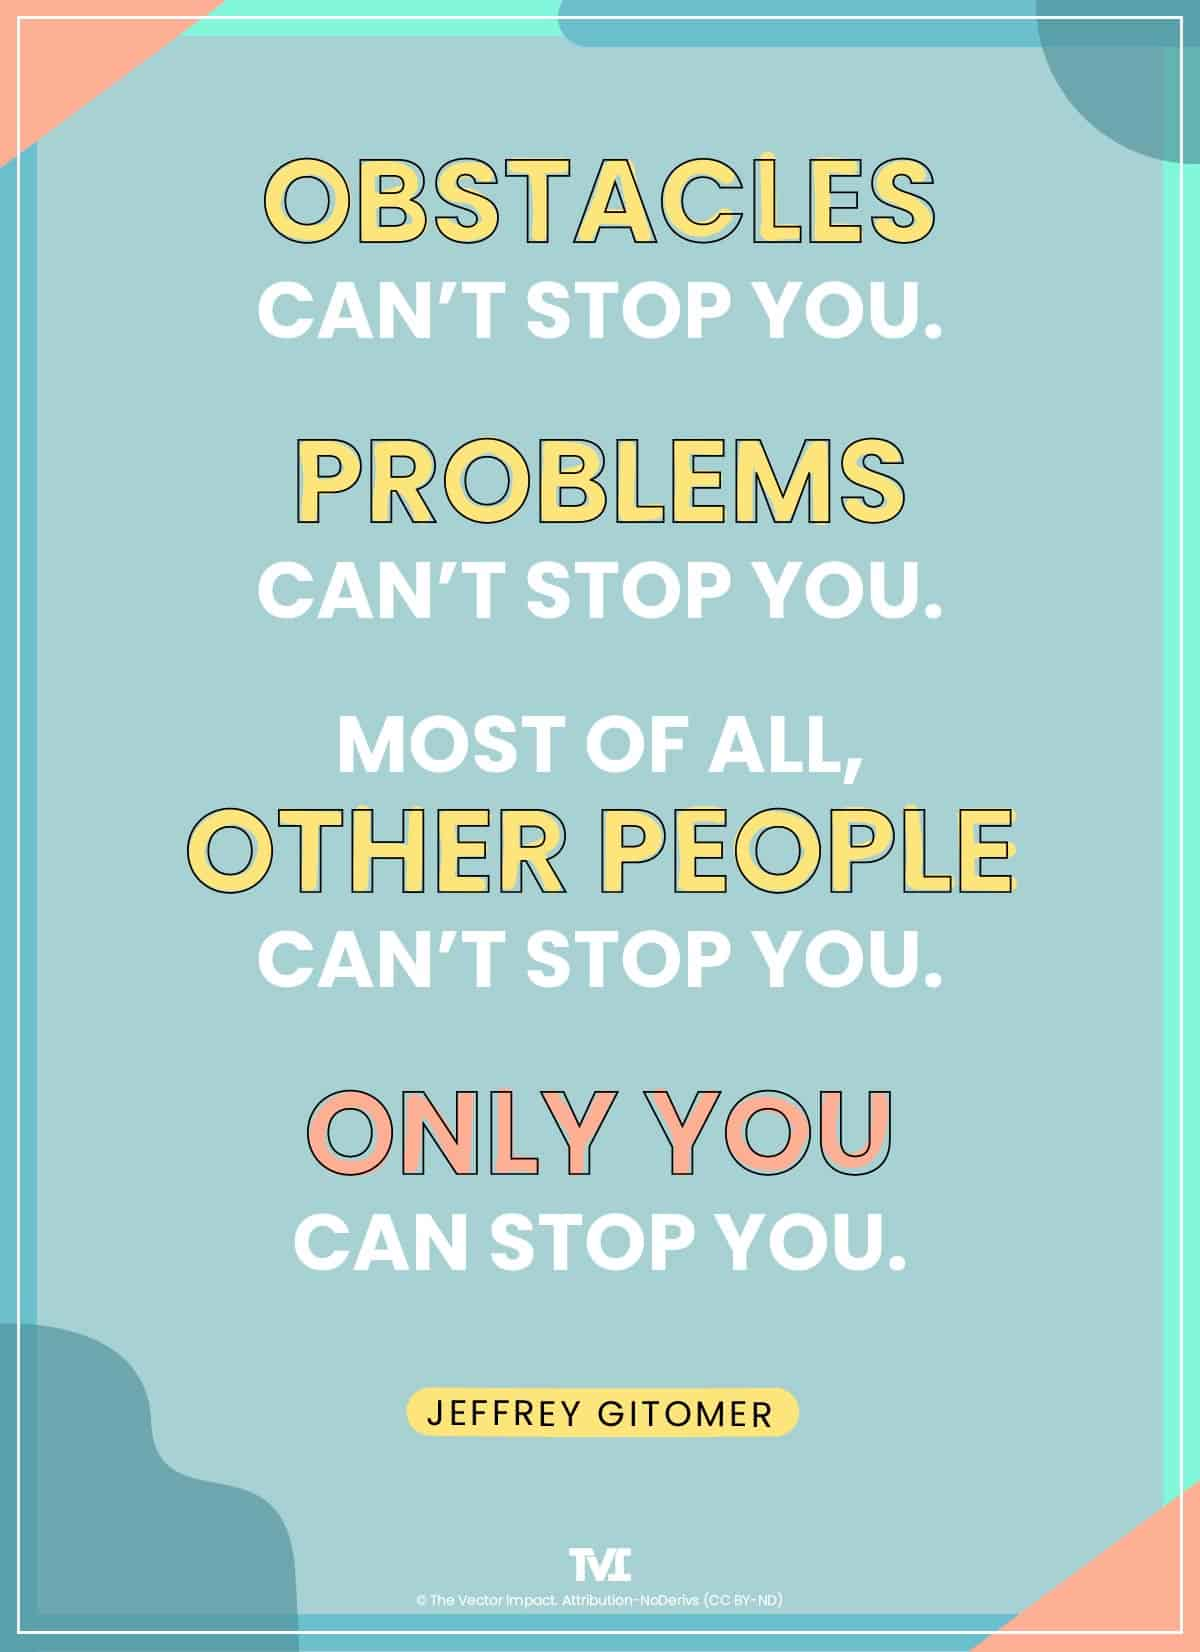 """Obstacles can't stop you. Problems can't stop you. Most of all, other people can't stop you. Only you can stop you."" -Jeffrey Gitomer"